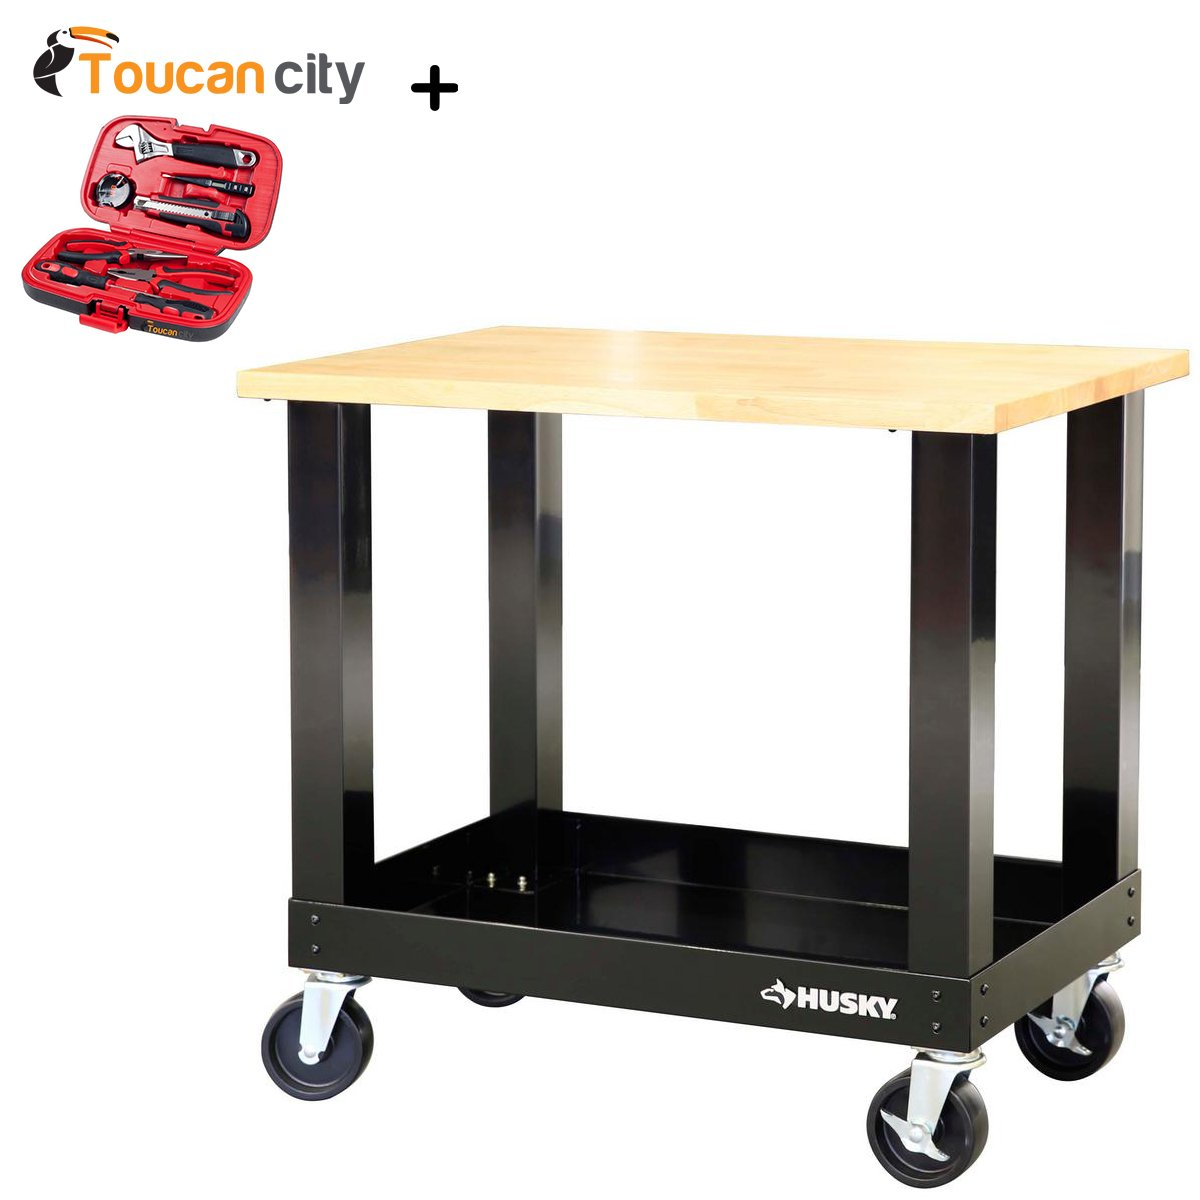 Toucan City Husky 3' Mobile Solid Wood Top Workbench G3600S-US and Tool Kit (9-Piece)